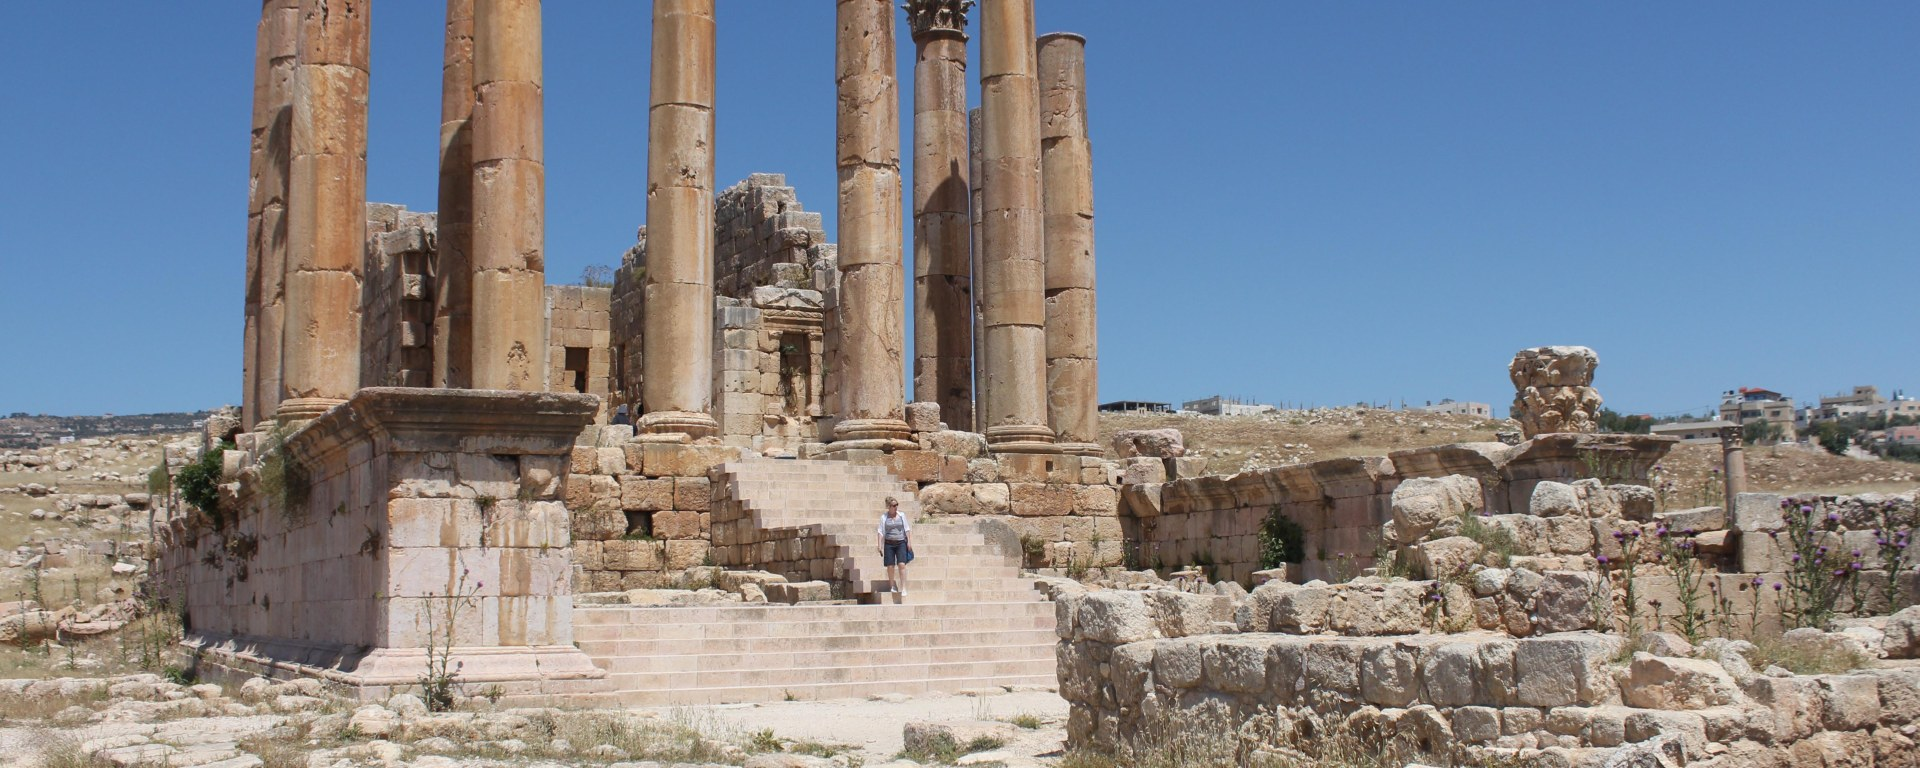 Jerash, travel, photography, travel photography, ancient, Roman, ruins, Jordan, photos